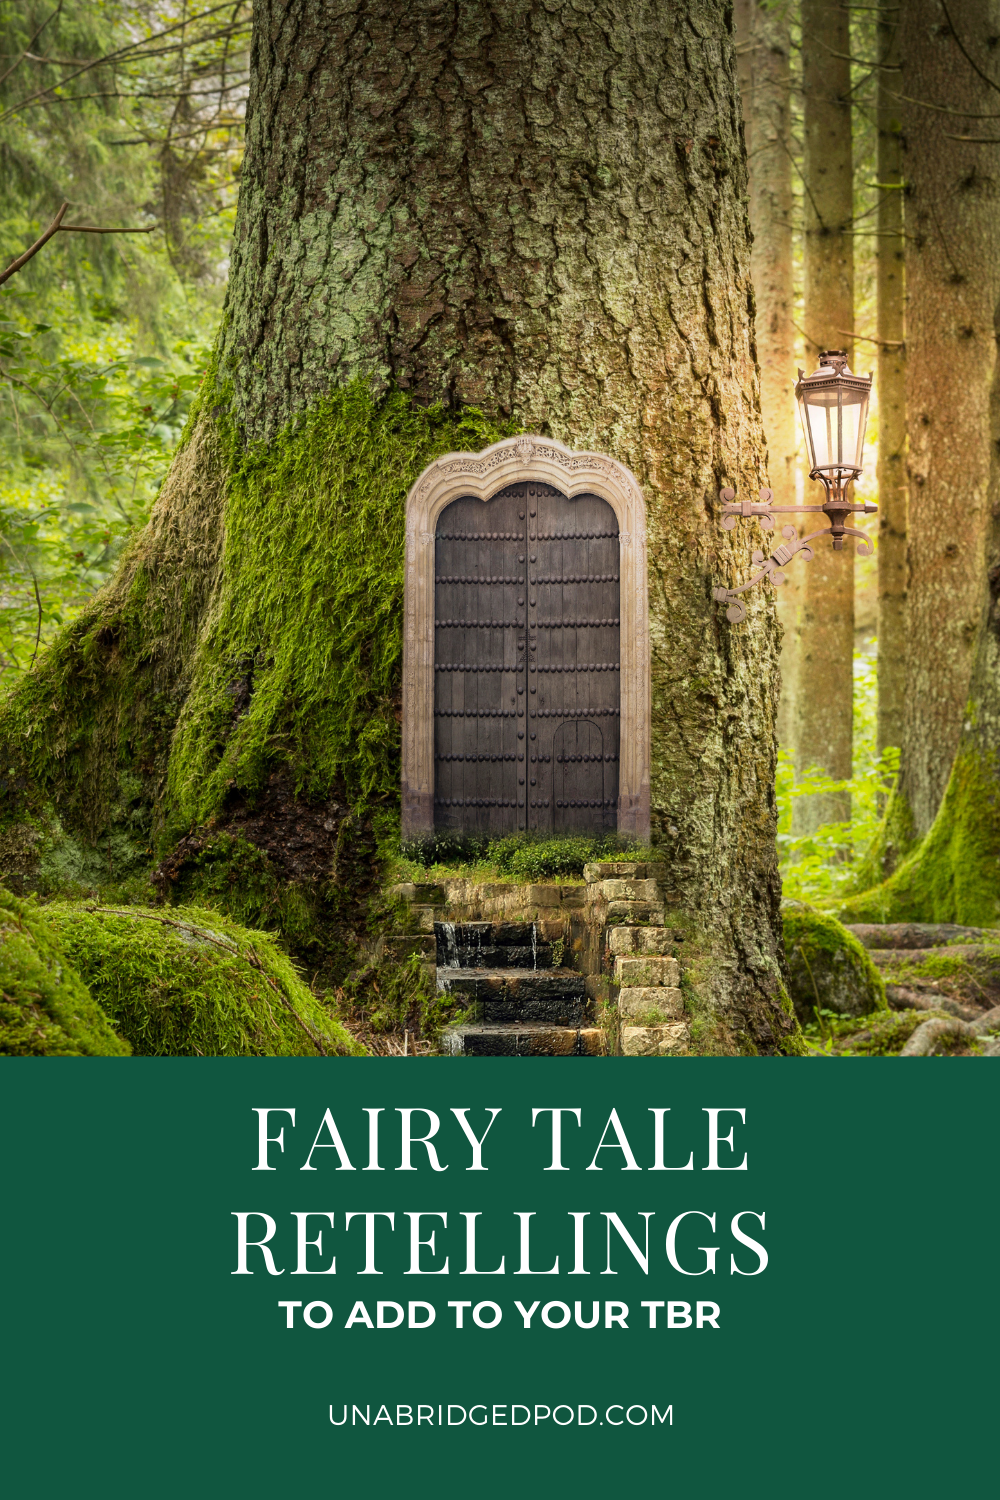 Text Fairy Tale Retellings to Add to Your TBR with image of forest scene with door